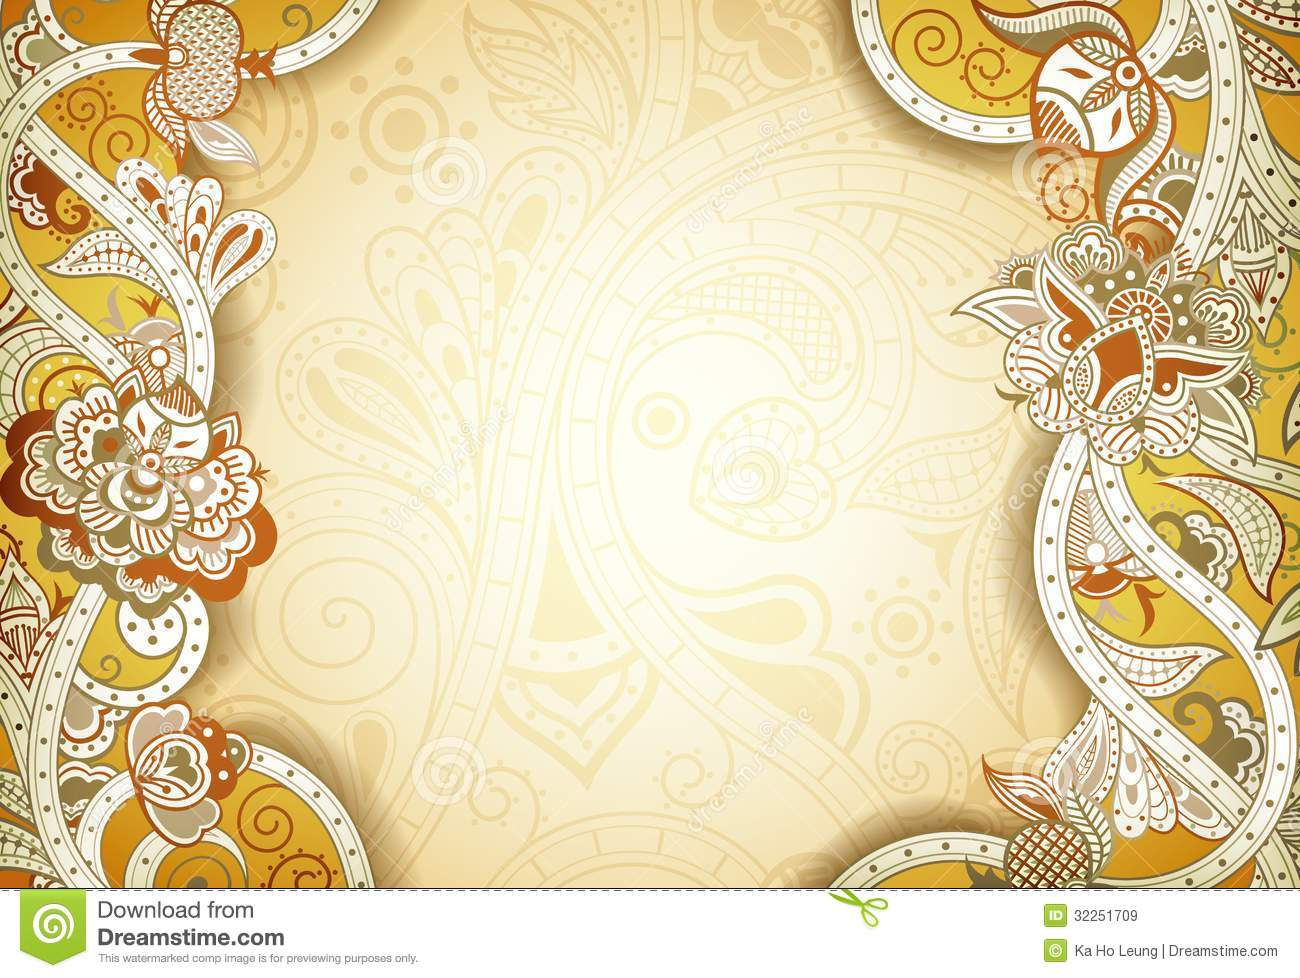 Abstract Floral Frame Background Royalty Free Stock Images - Image: 32251709